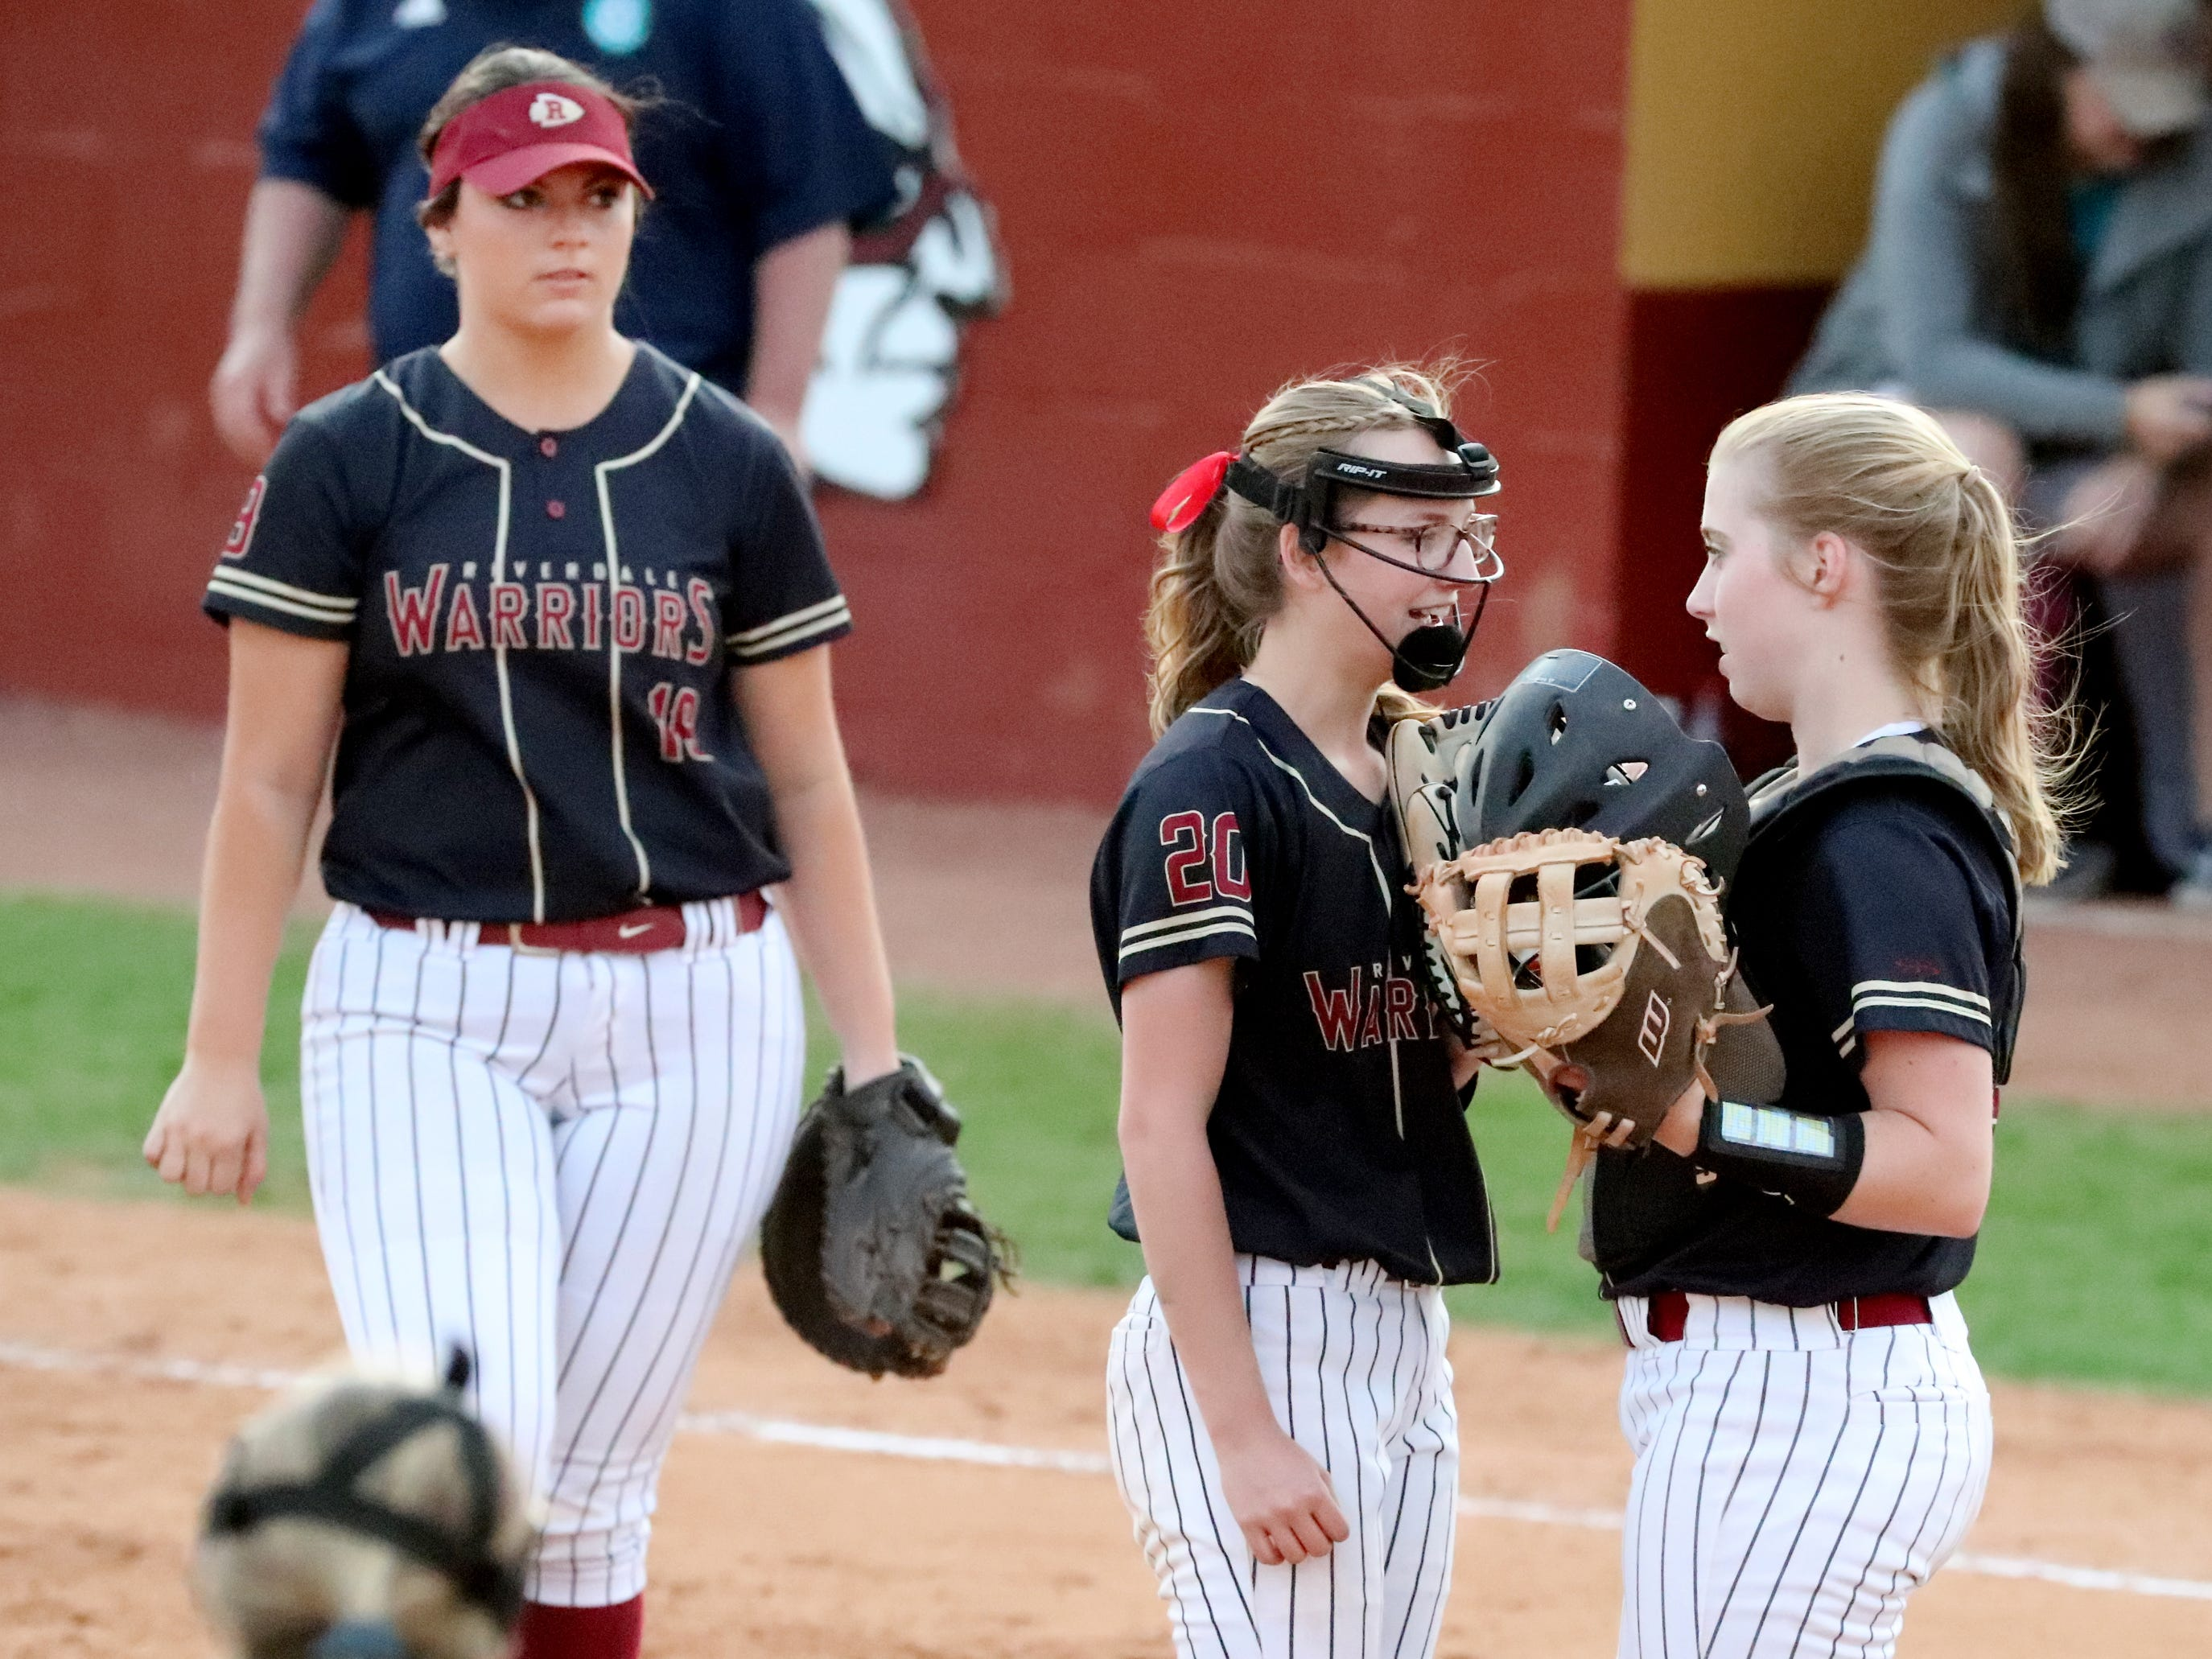 Riverdale's pitcher Alexis Chapman (20) talks with the catcher Riverdale's Kendall Forsythe (21) during the game against Siegel as Riverdale's Sarah Margaret Lowe (19) walks to the pitcher's circle on Thursday April 11, 2019, at Riverdale.